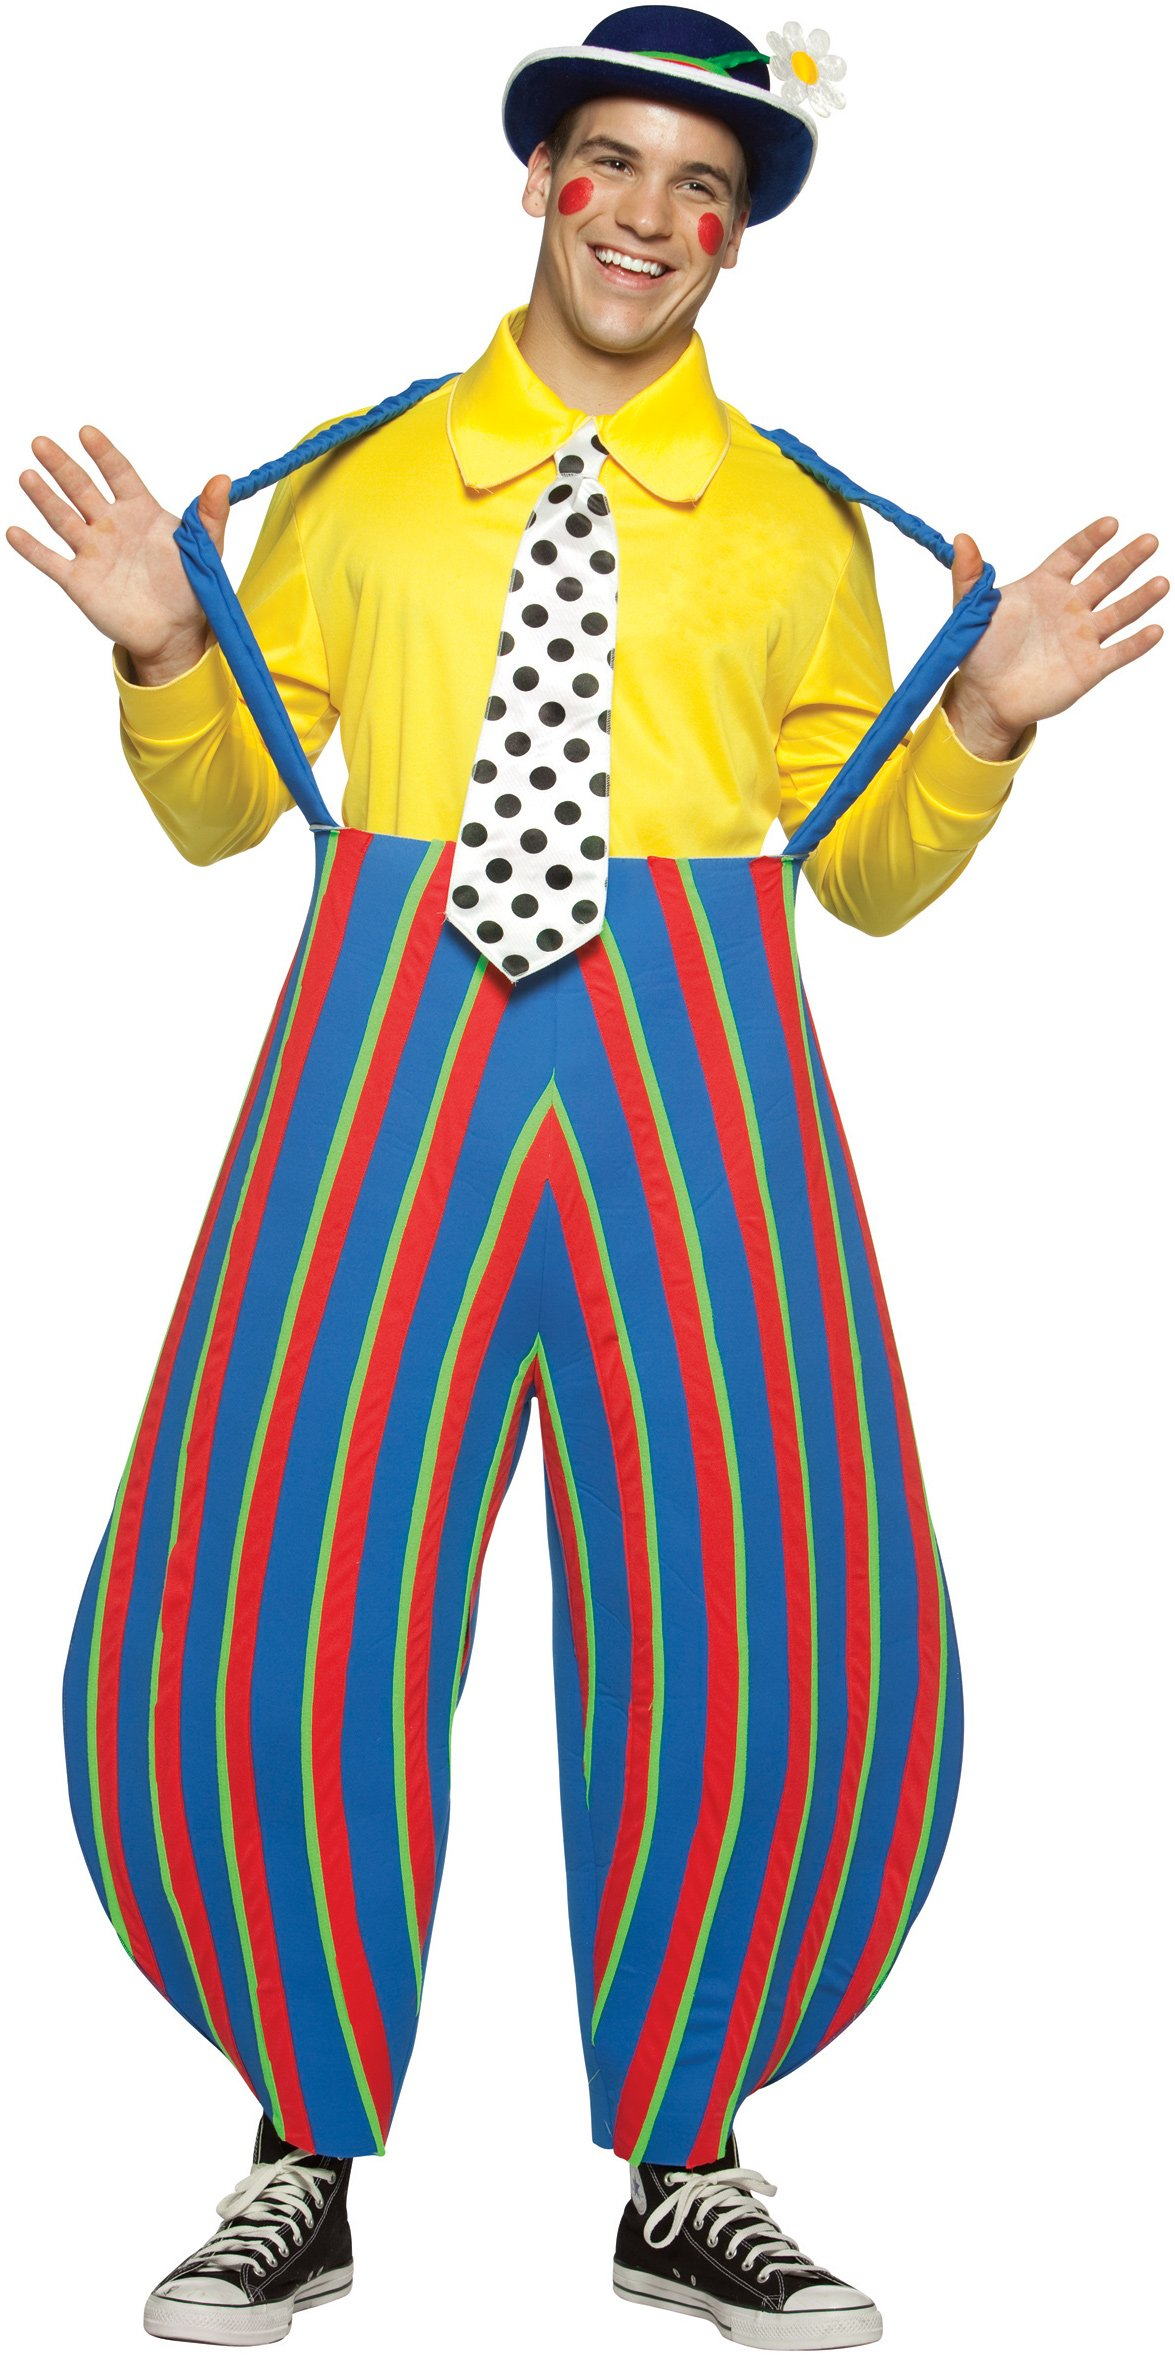 Stripey the Clown Adult Circus Costume